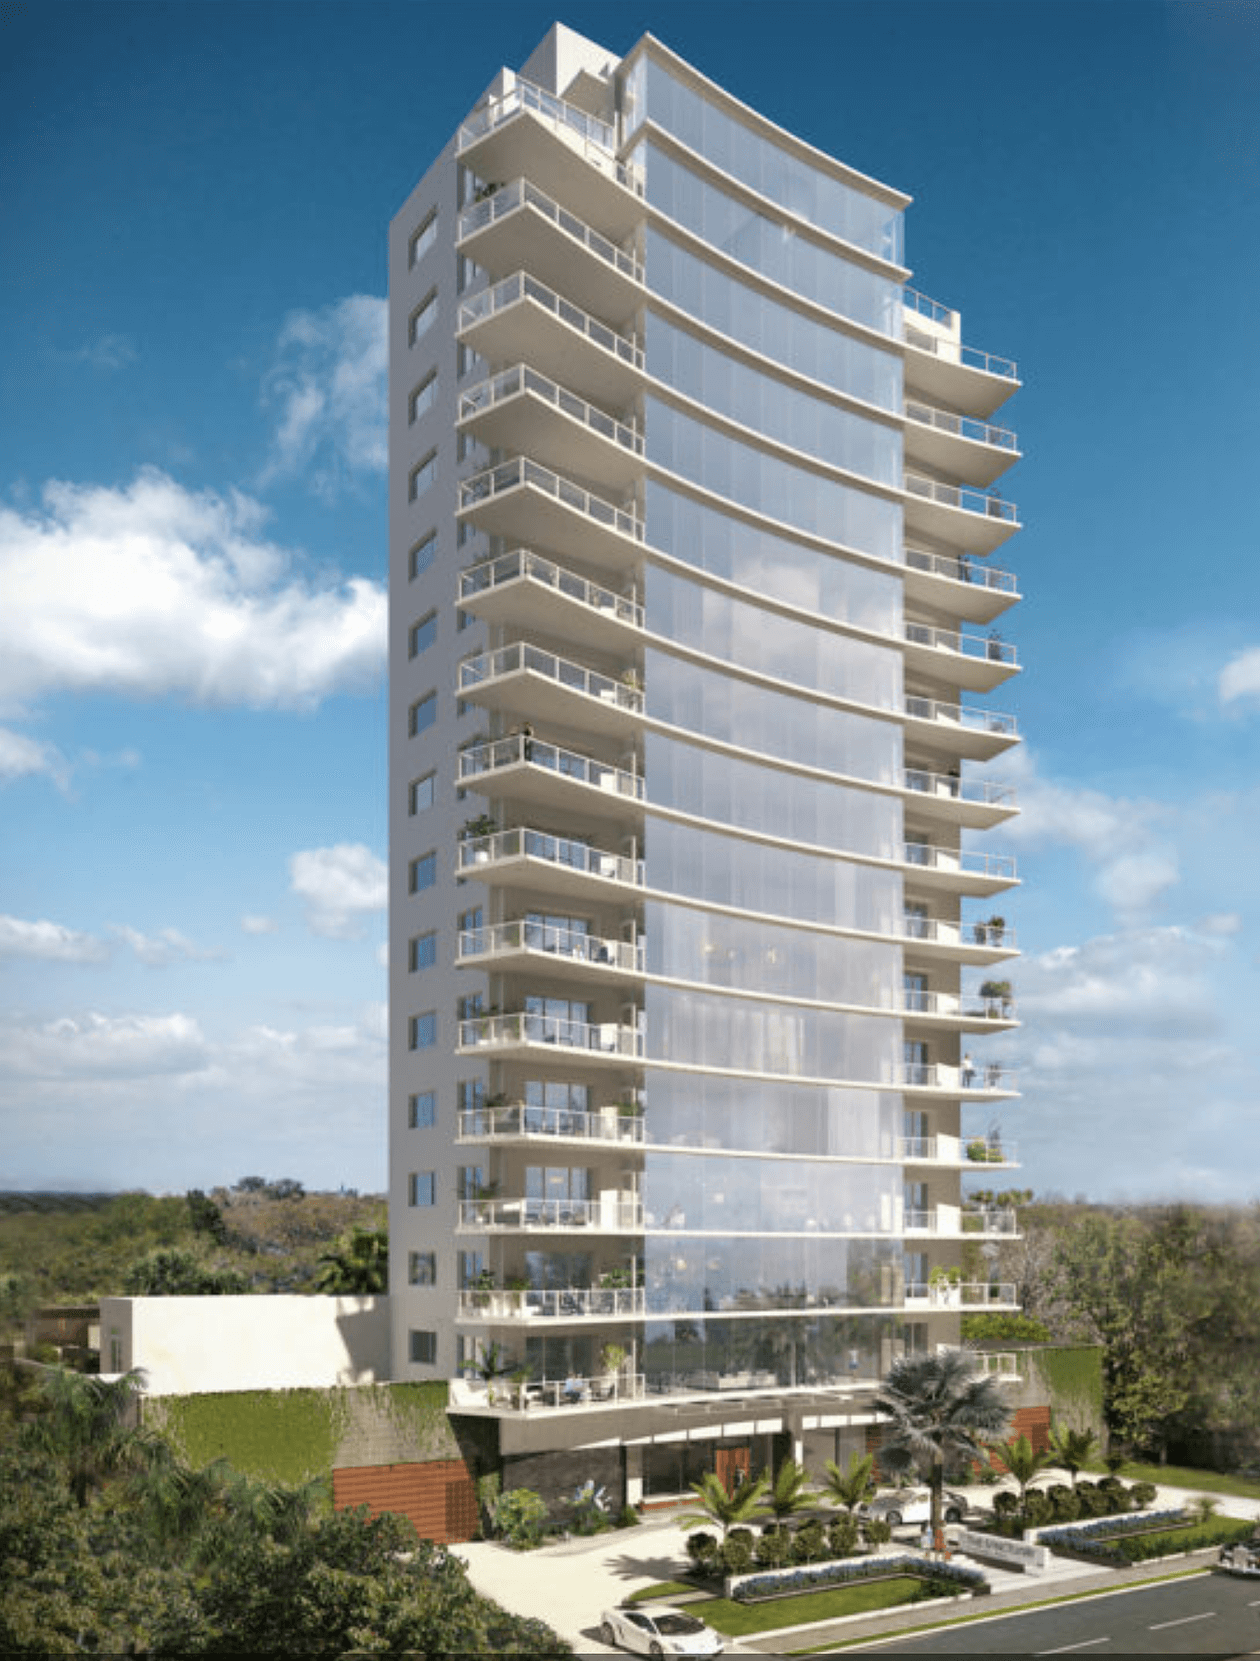 Luxury Condo Tower in Tampa